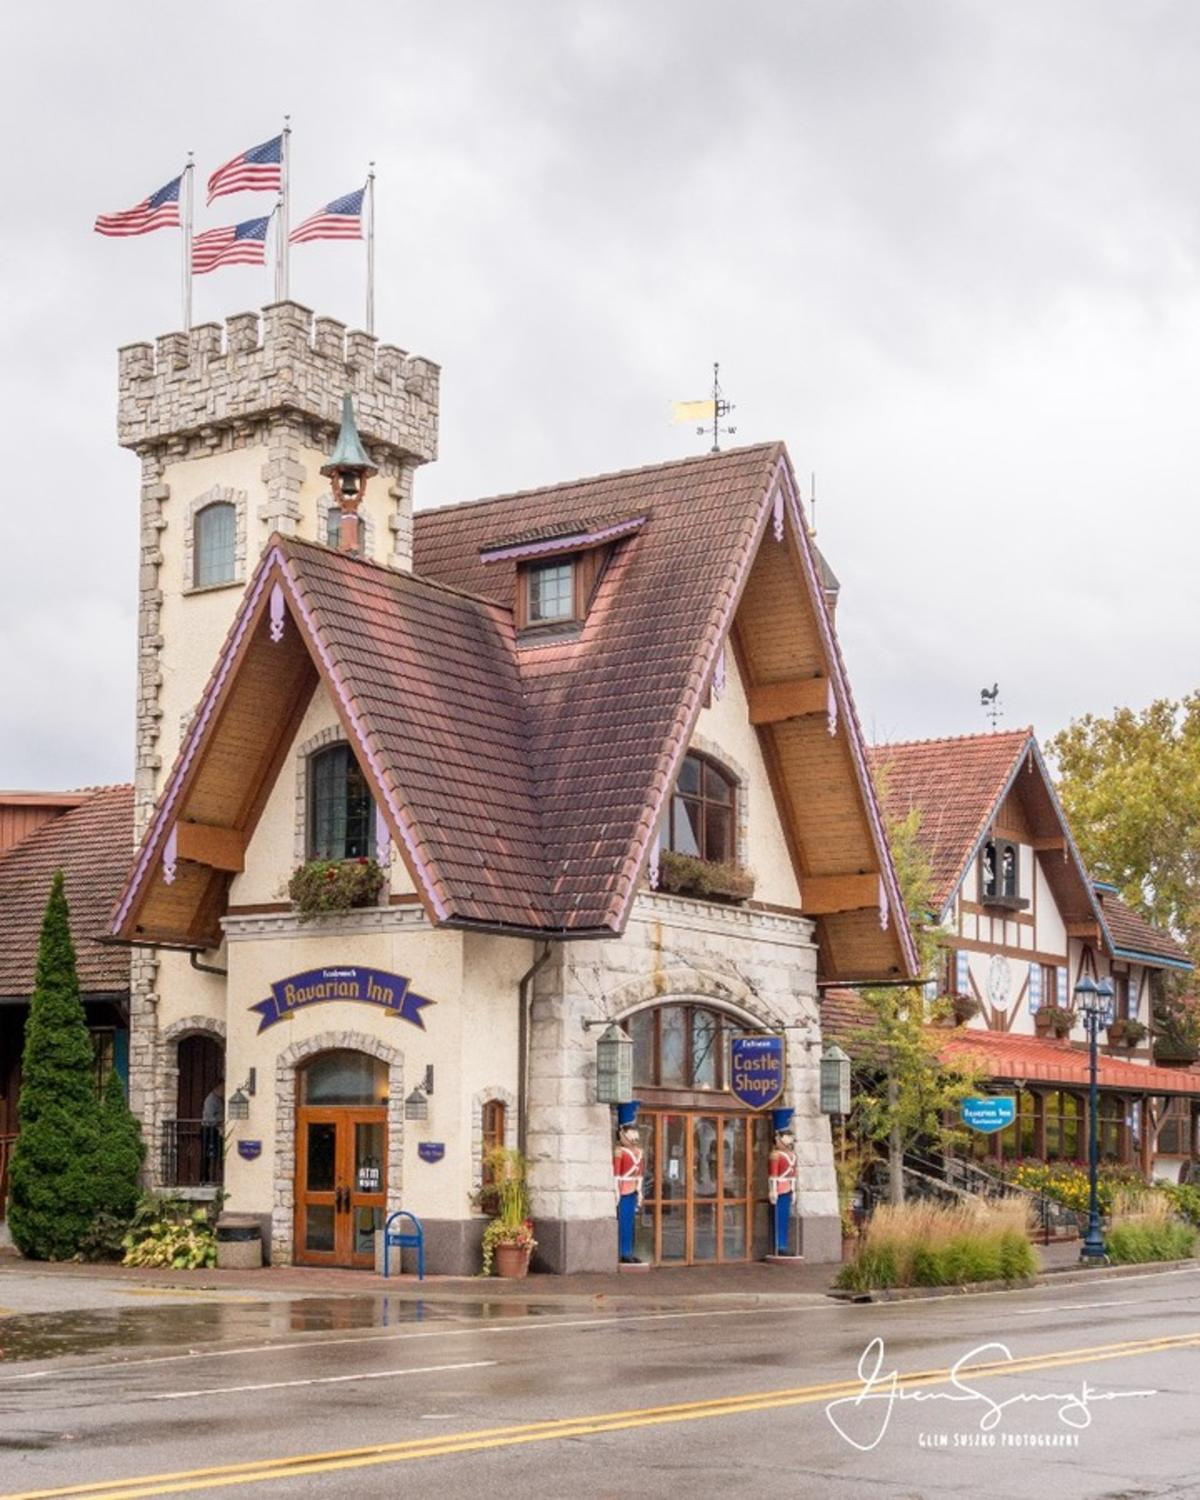 Street view of the Bavarian Inn Castle Shops in Frankenmuth